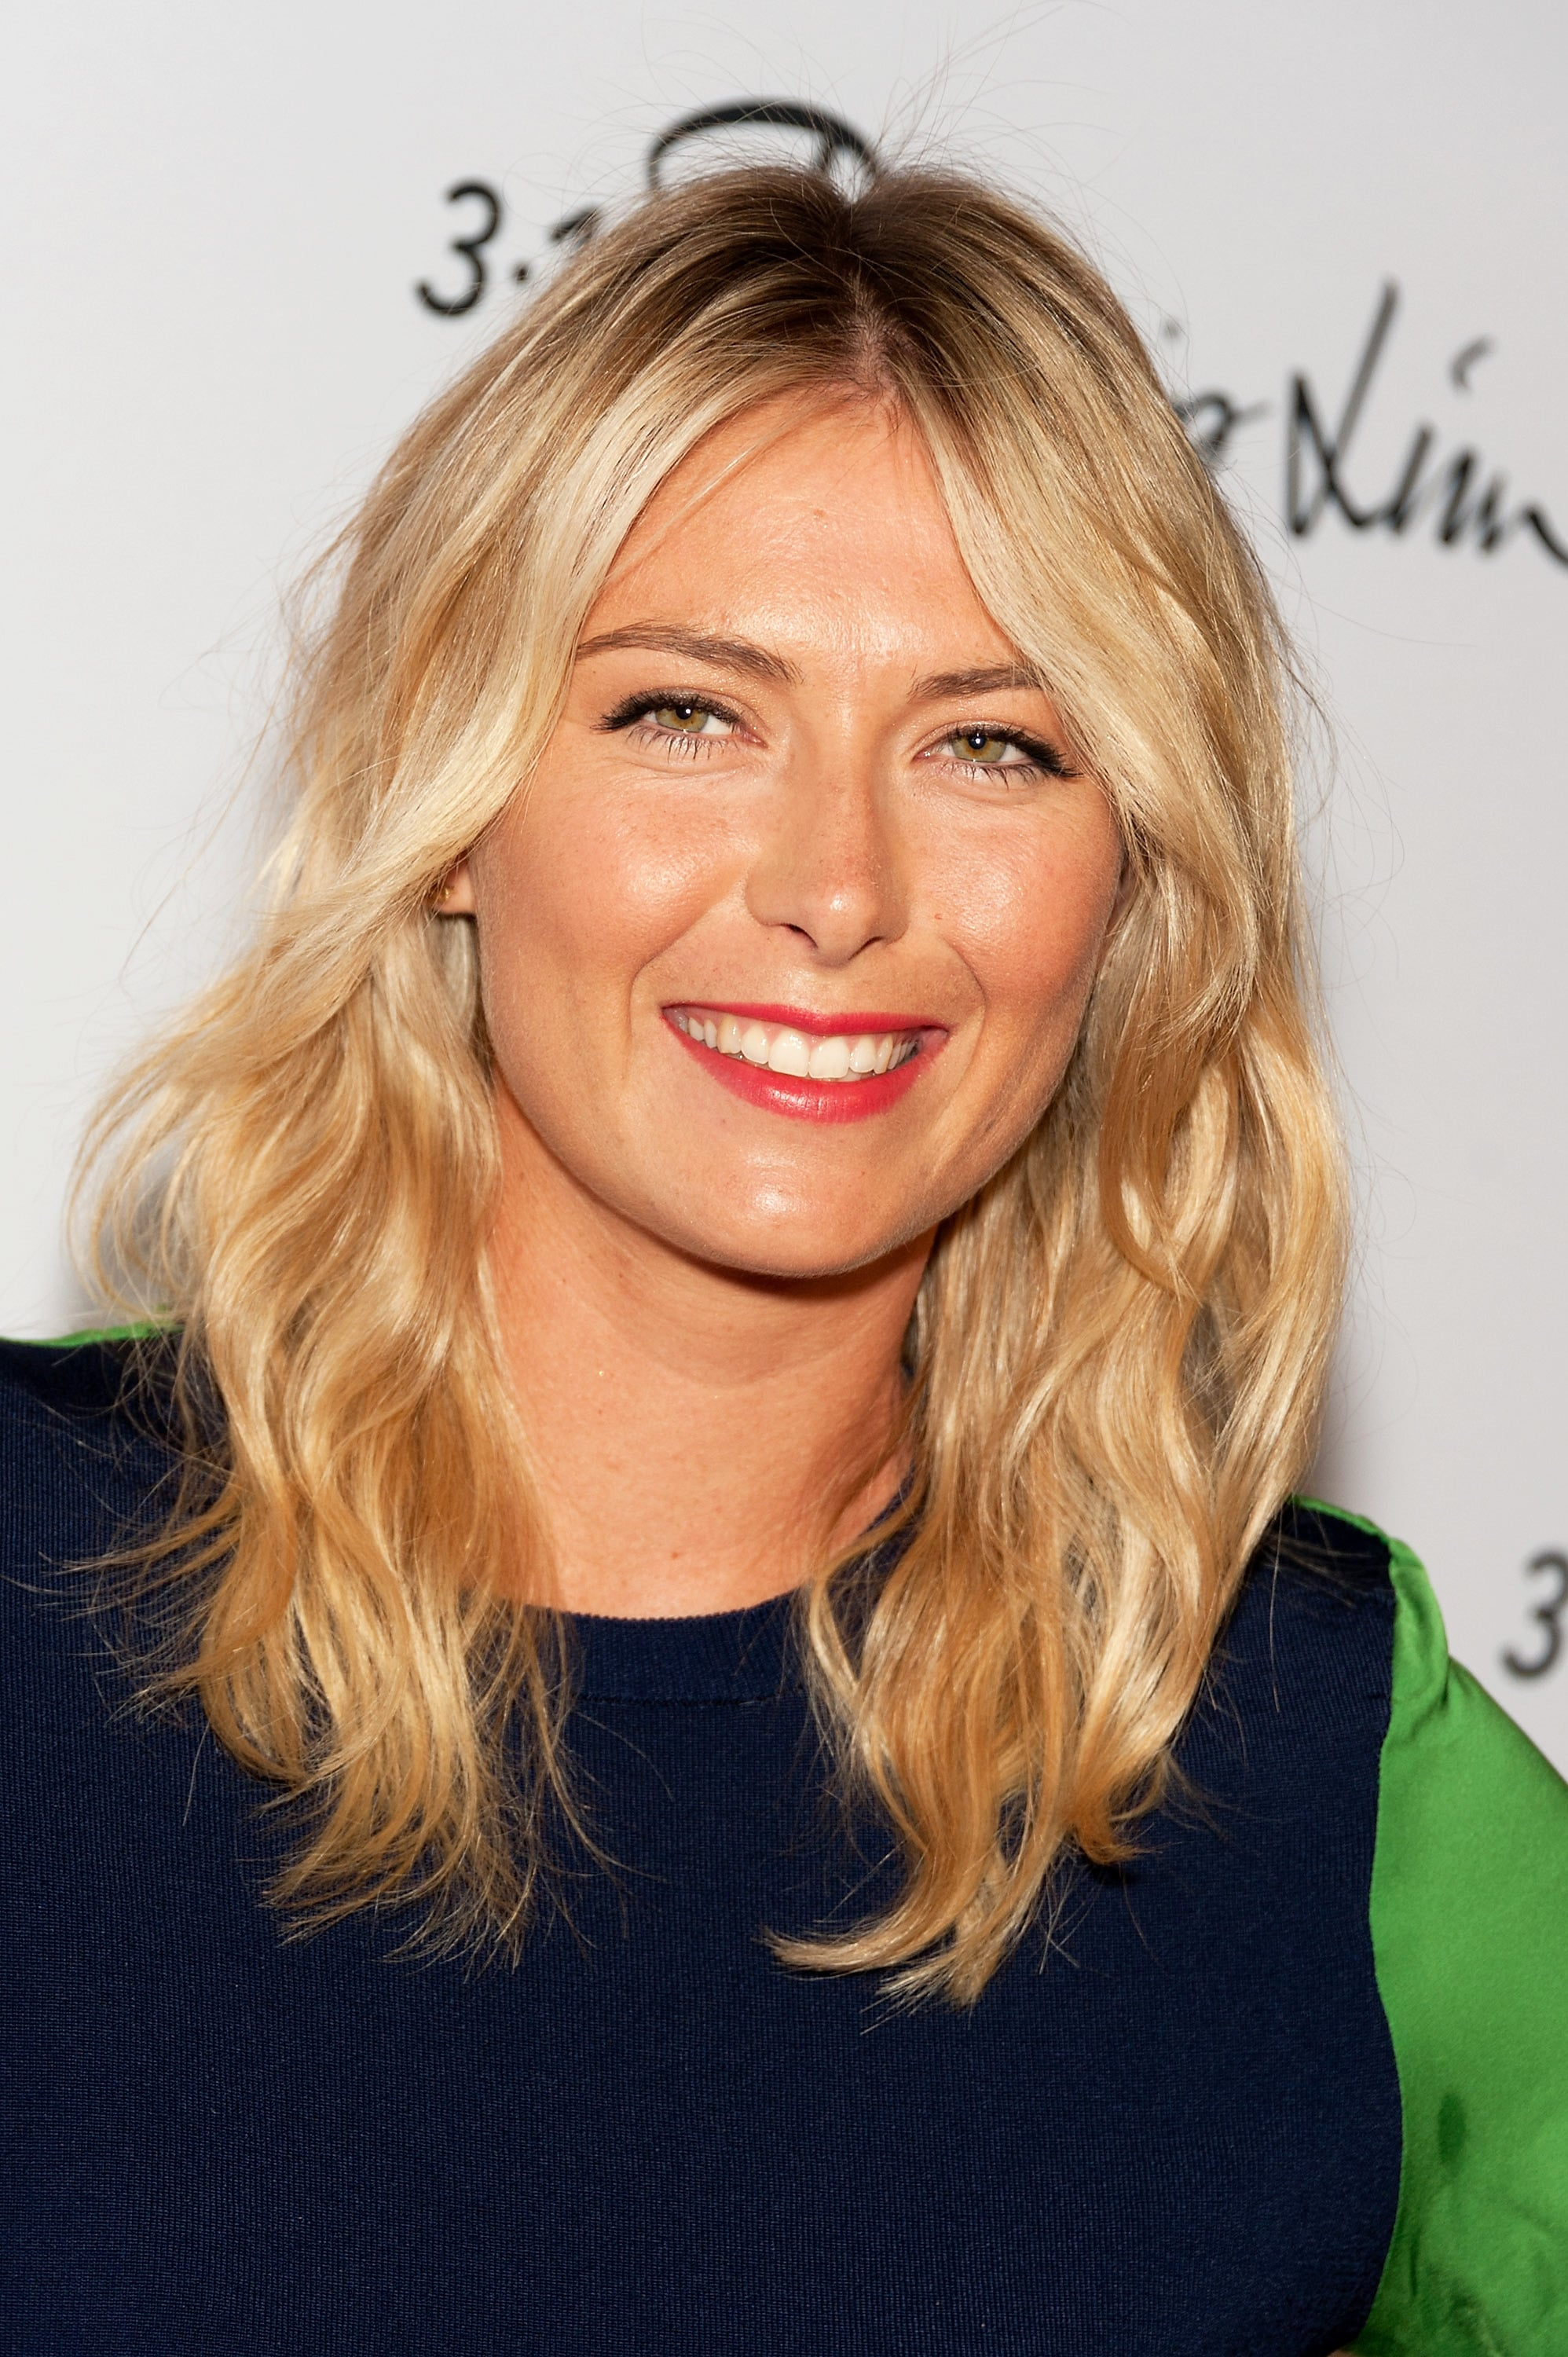 Maria Sharapova at the 3.1 Phillip Lim For Target Launch Event.